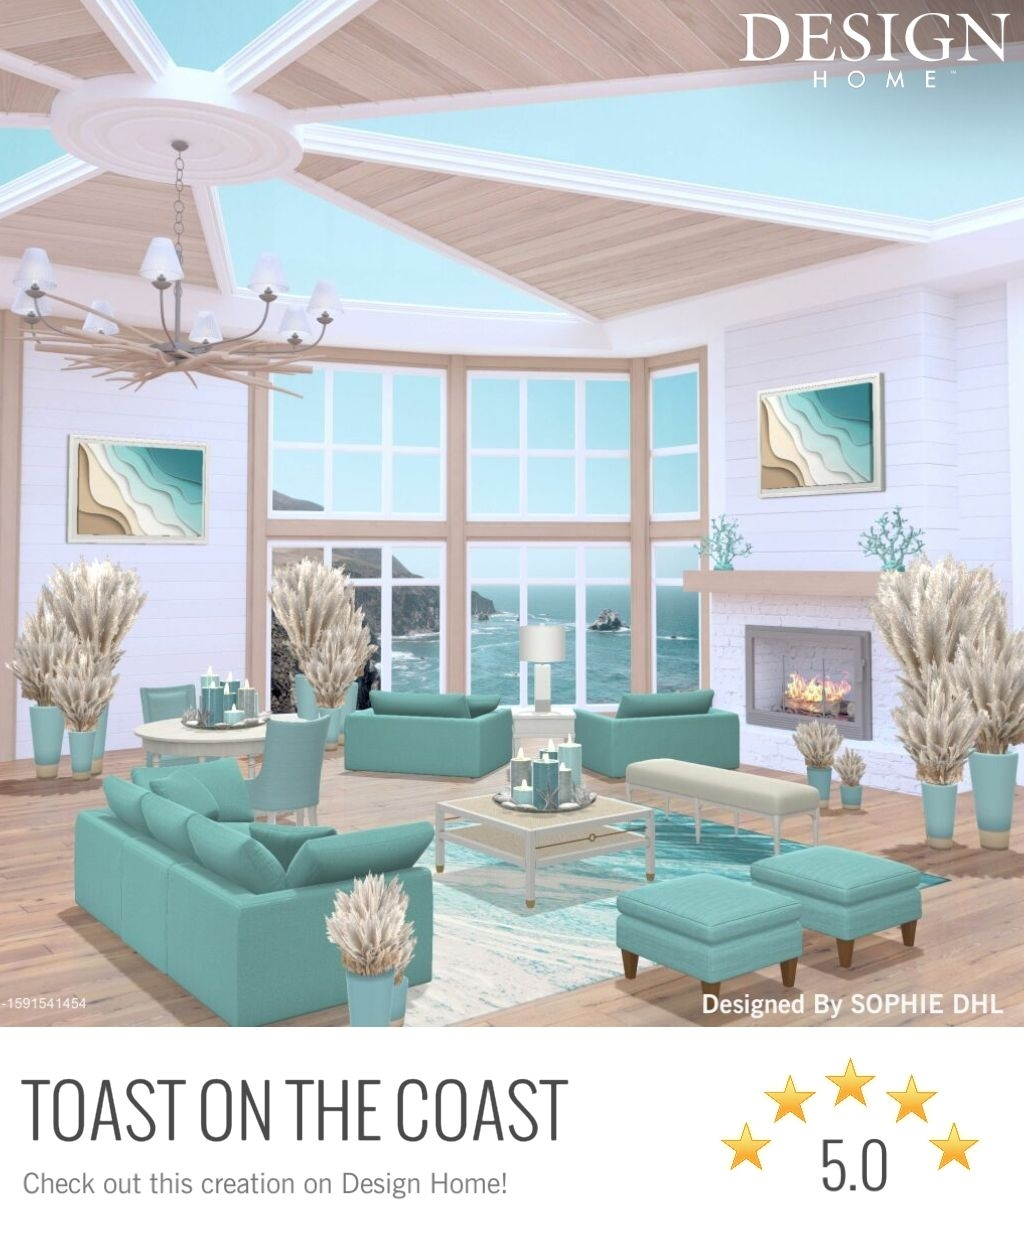 Appealing Living Room Decor Game On Stunning Pin by Nicole Johnson On Design Home App Game In 2020 On Living Room Decor Game